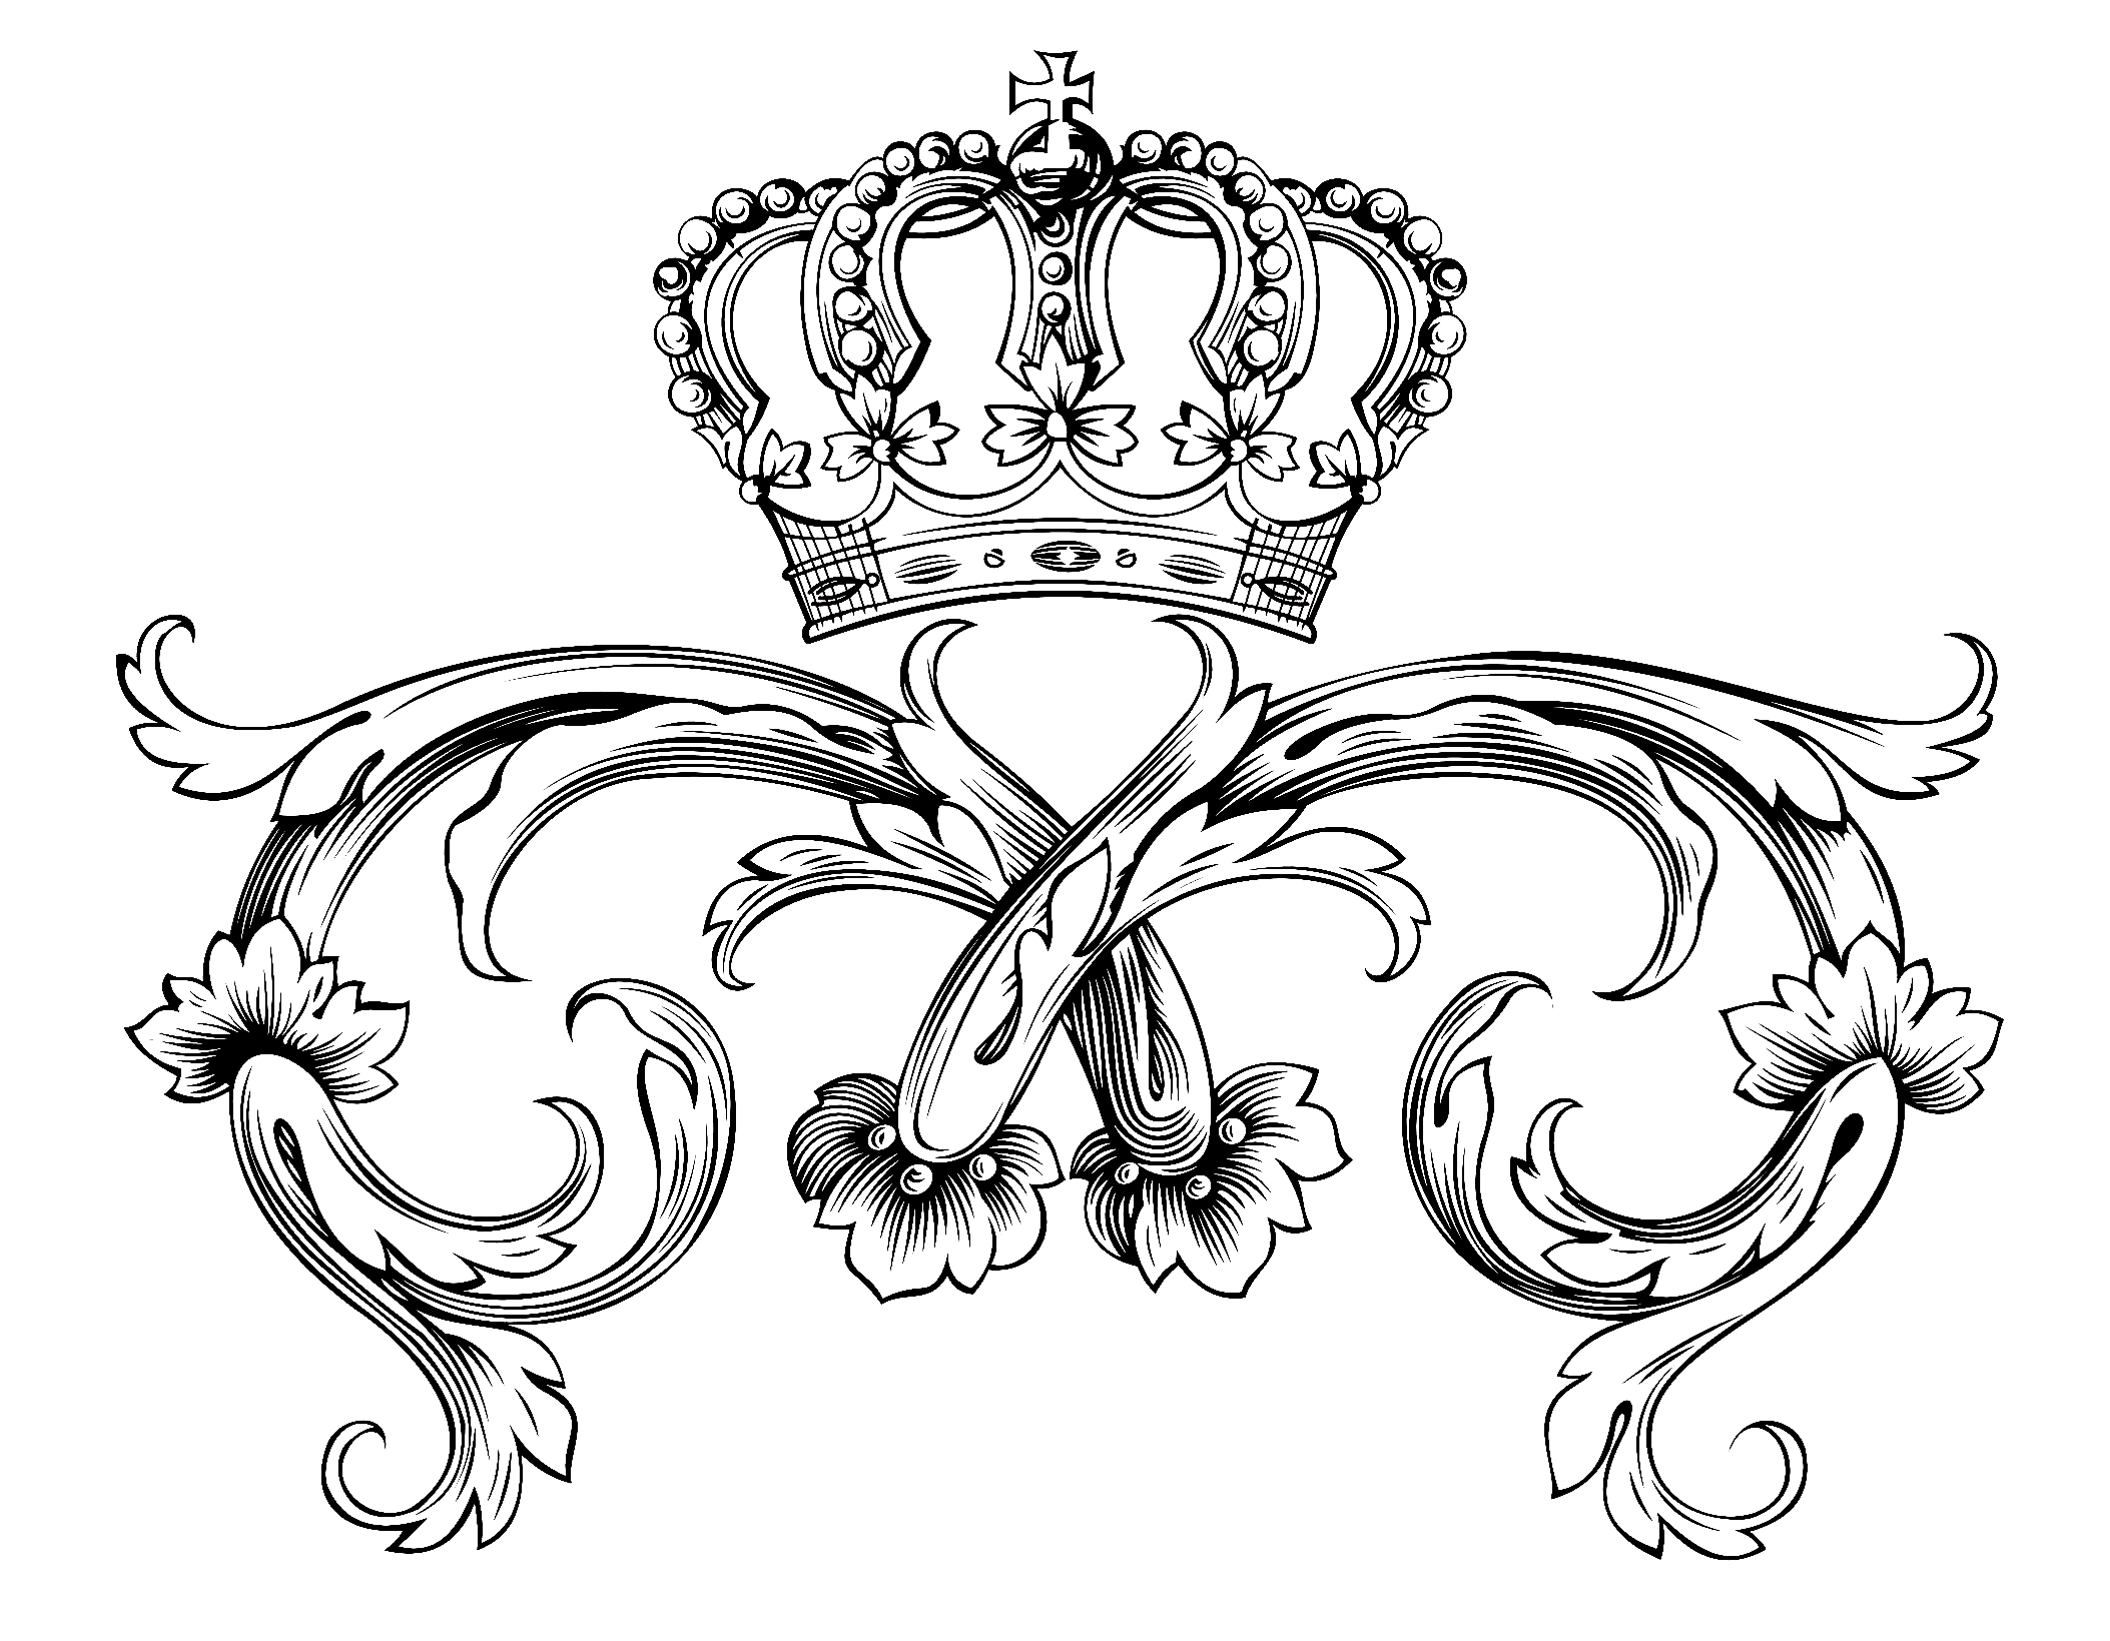 Free Coloring Page Adult Symbol Royal Crown By Dl1on With